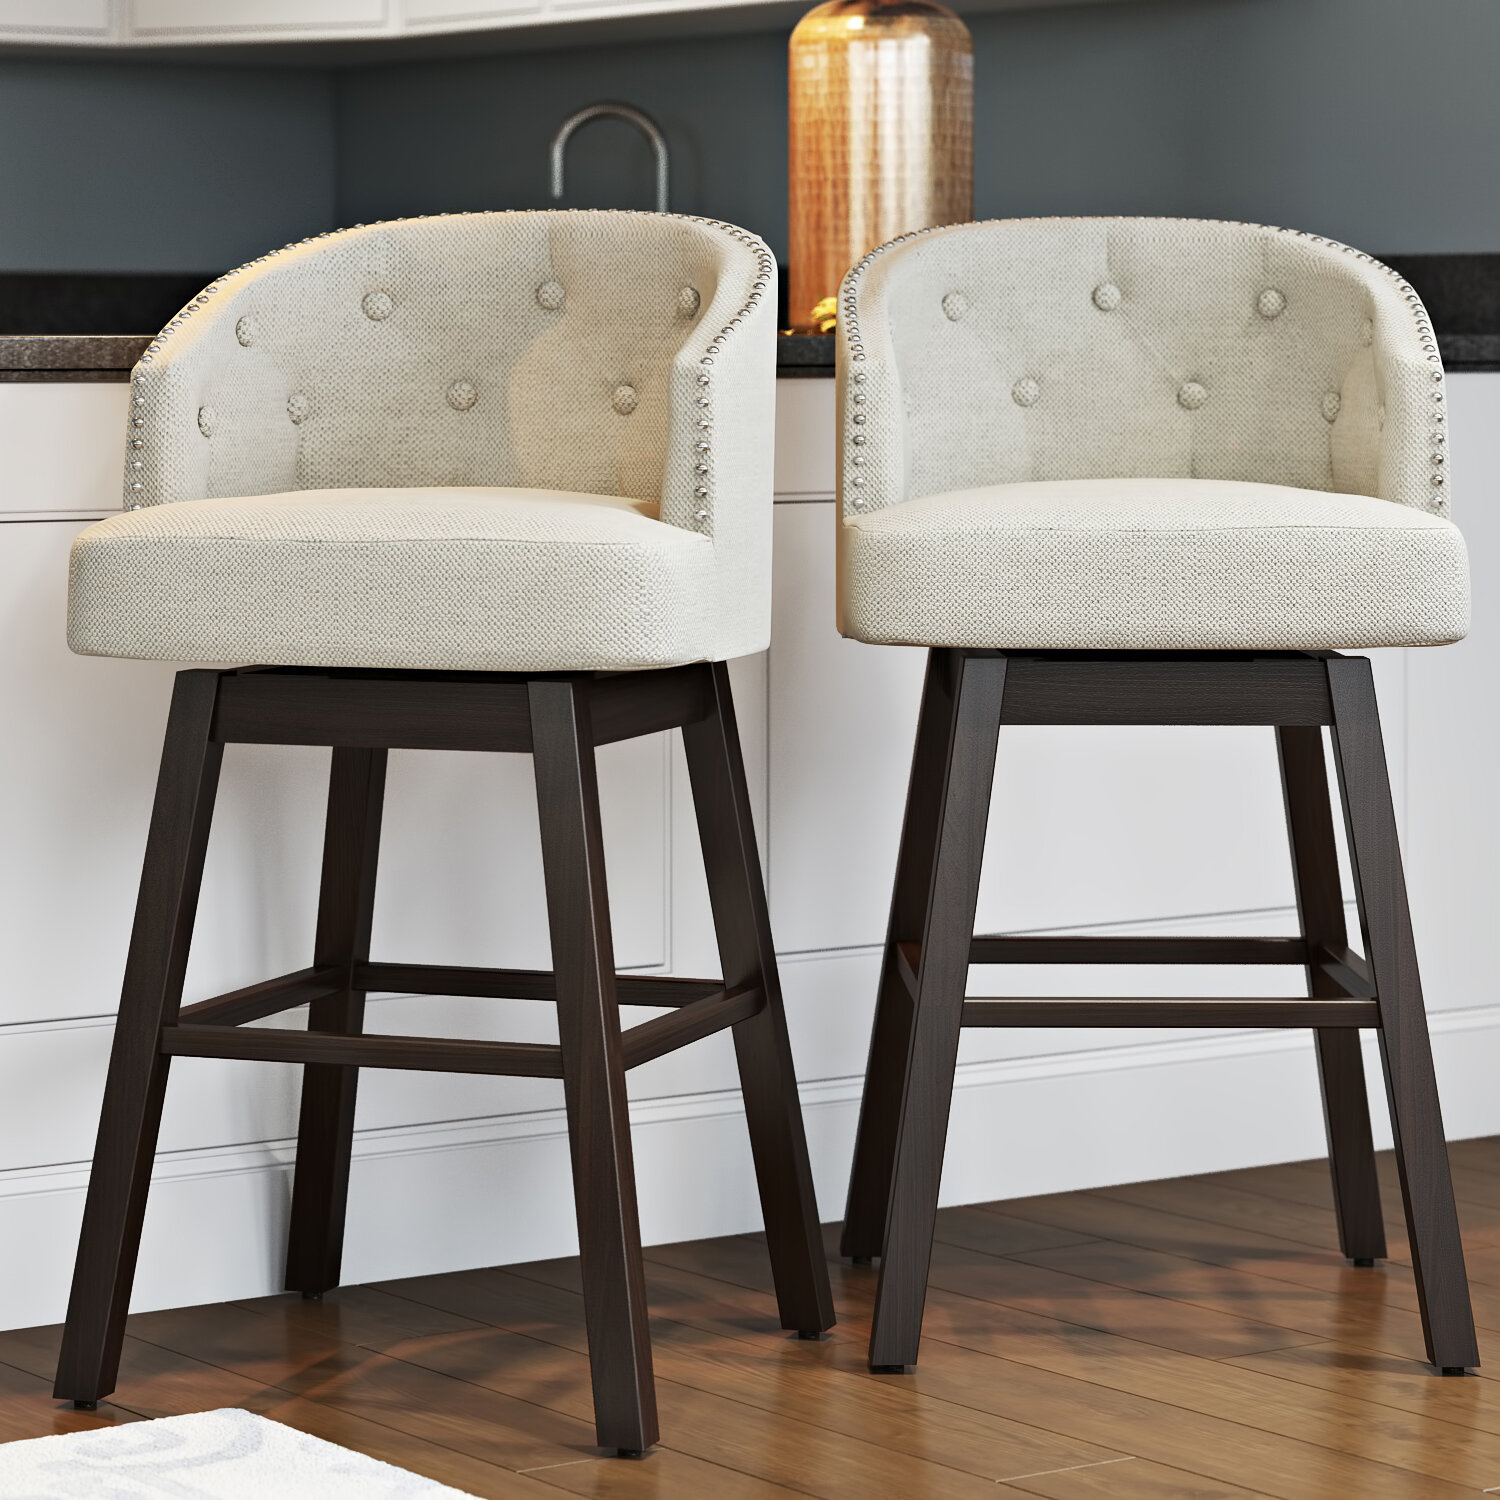 Swivel Bar Stools Counter Stools You Ll Love In 2021 Wayfair